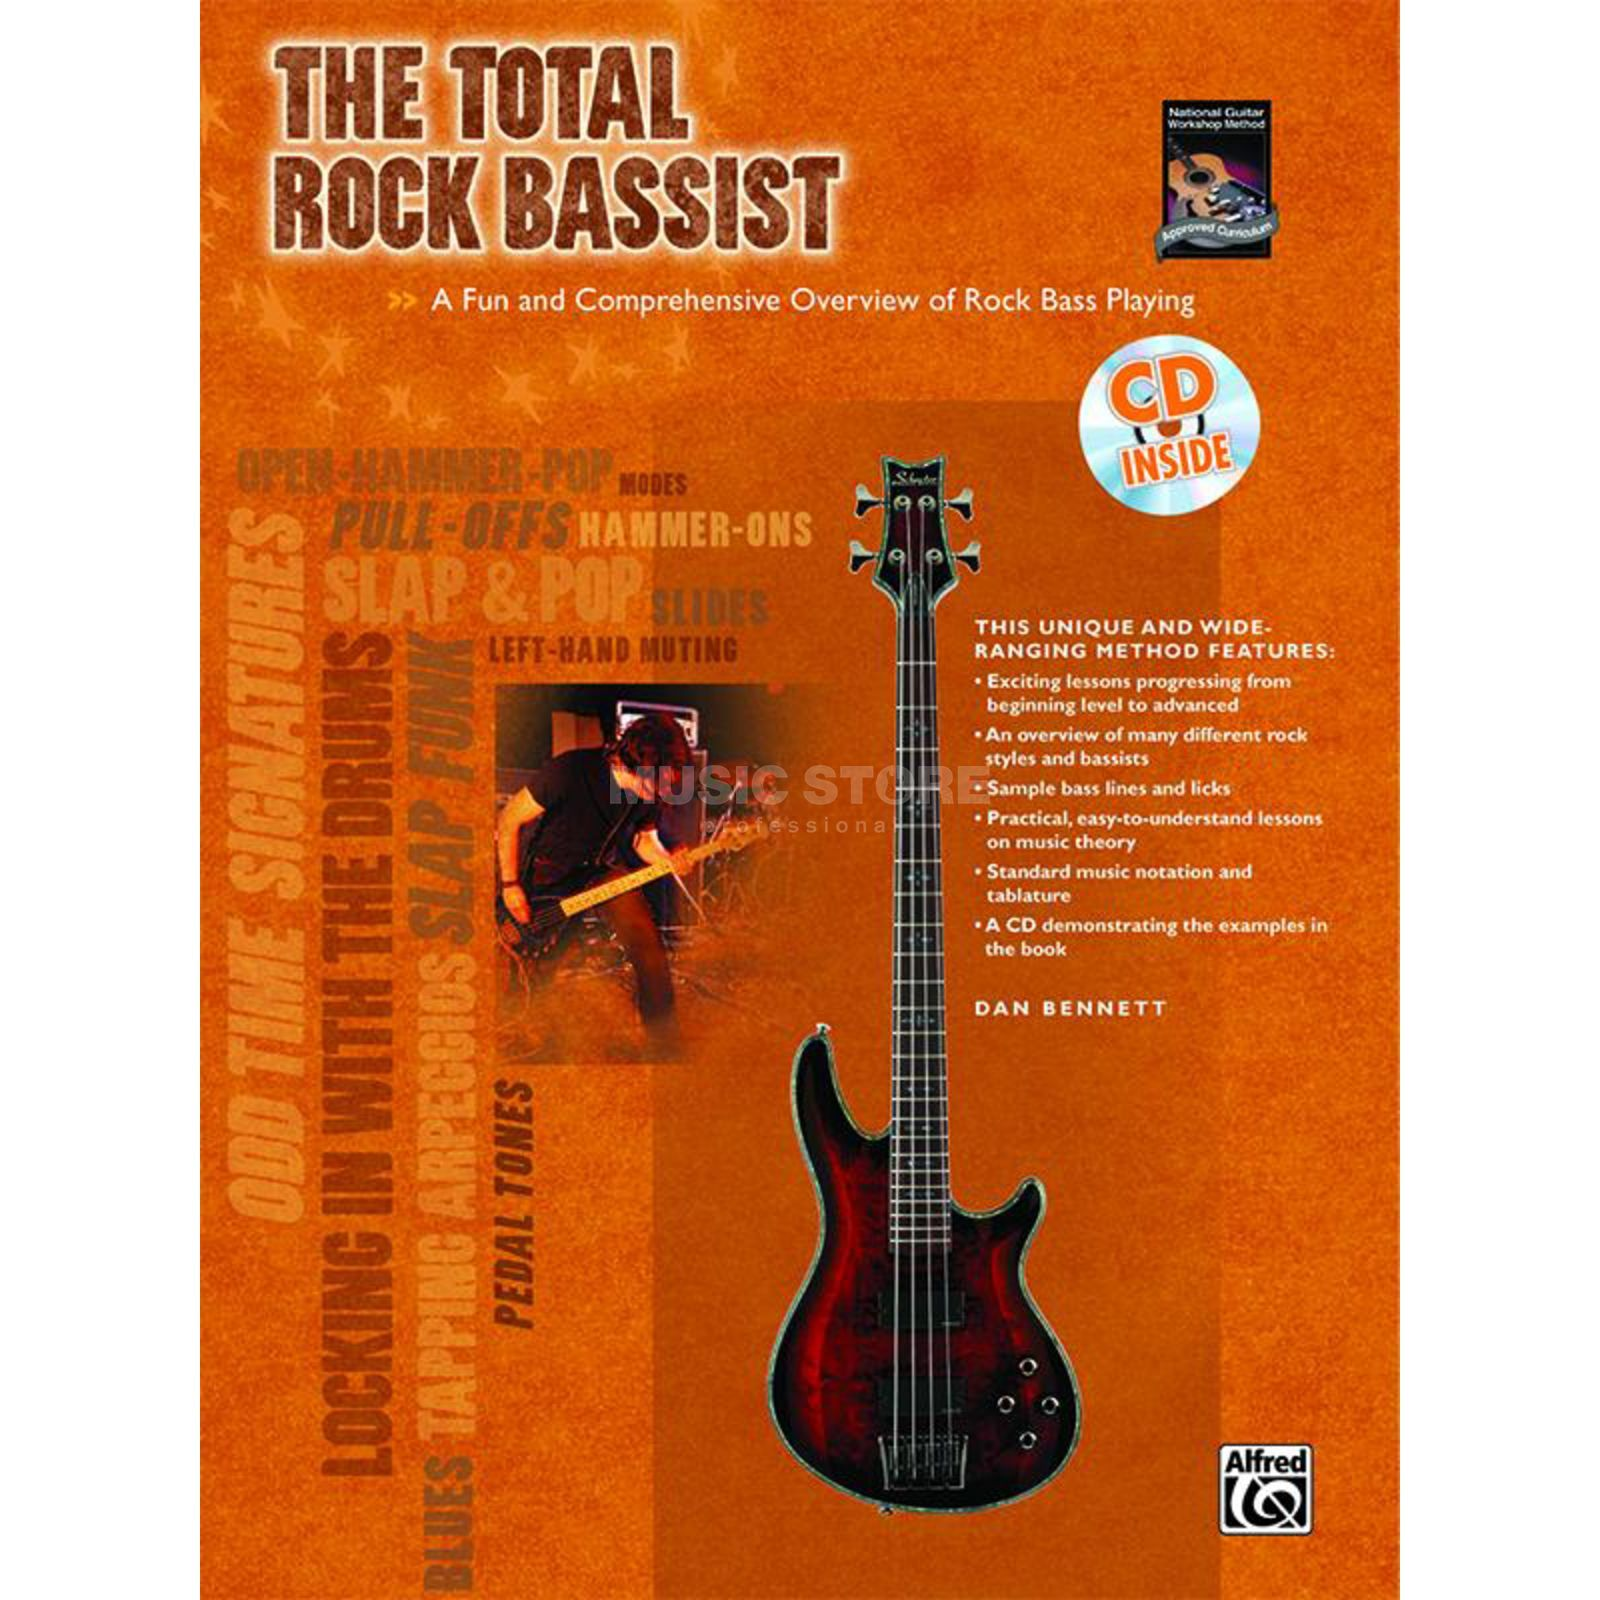 Alfred Music The Total Rock Bassist Book and CD Produktbillede